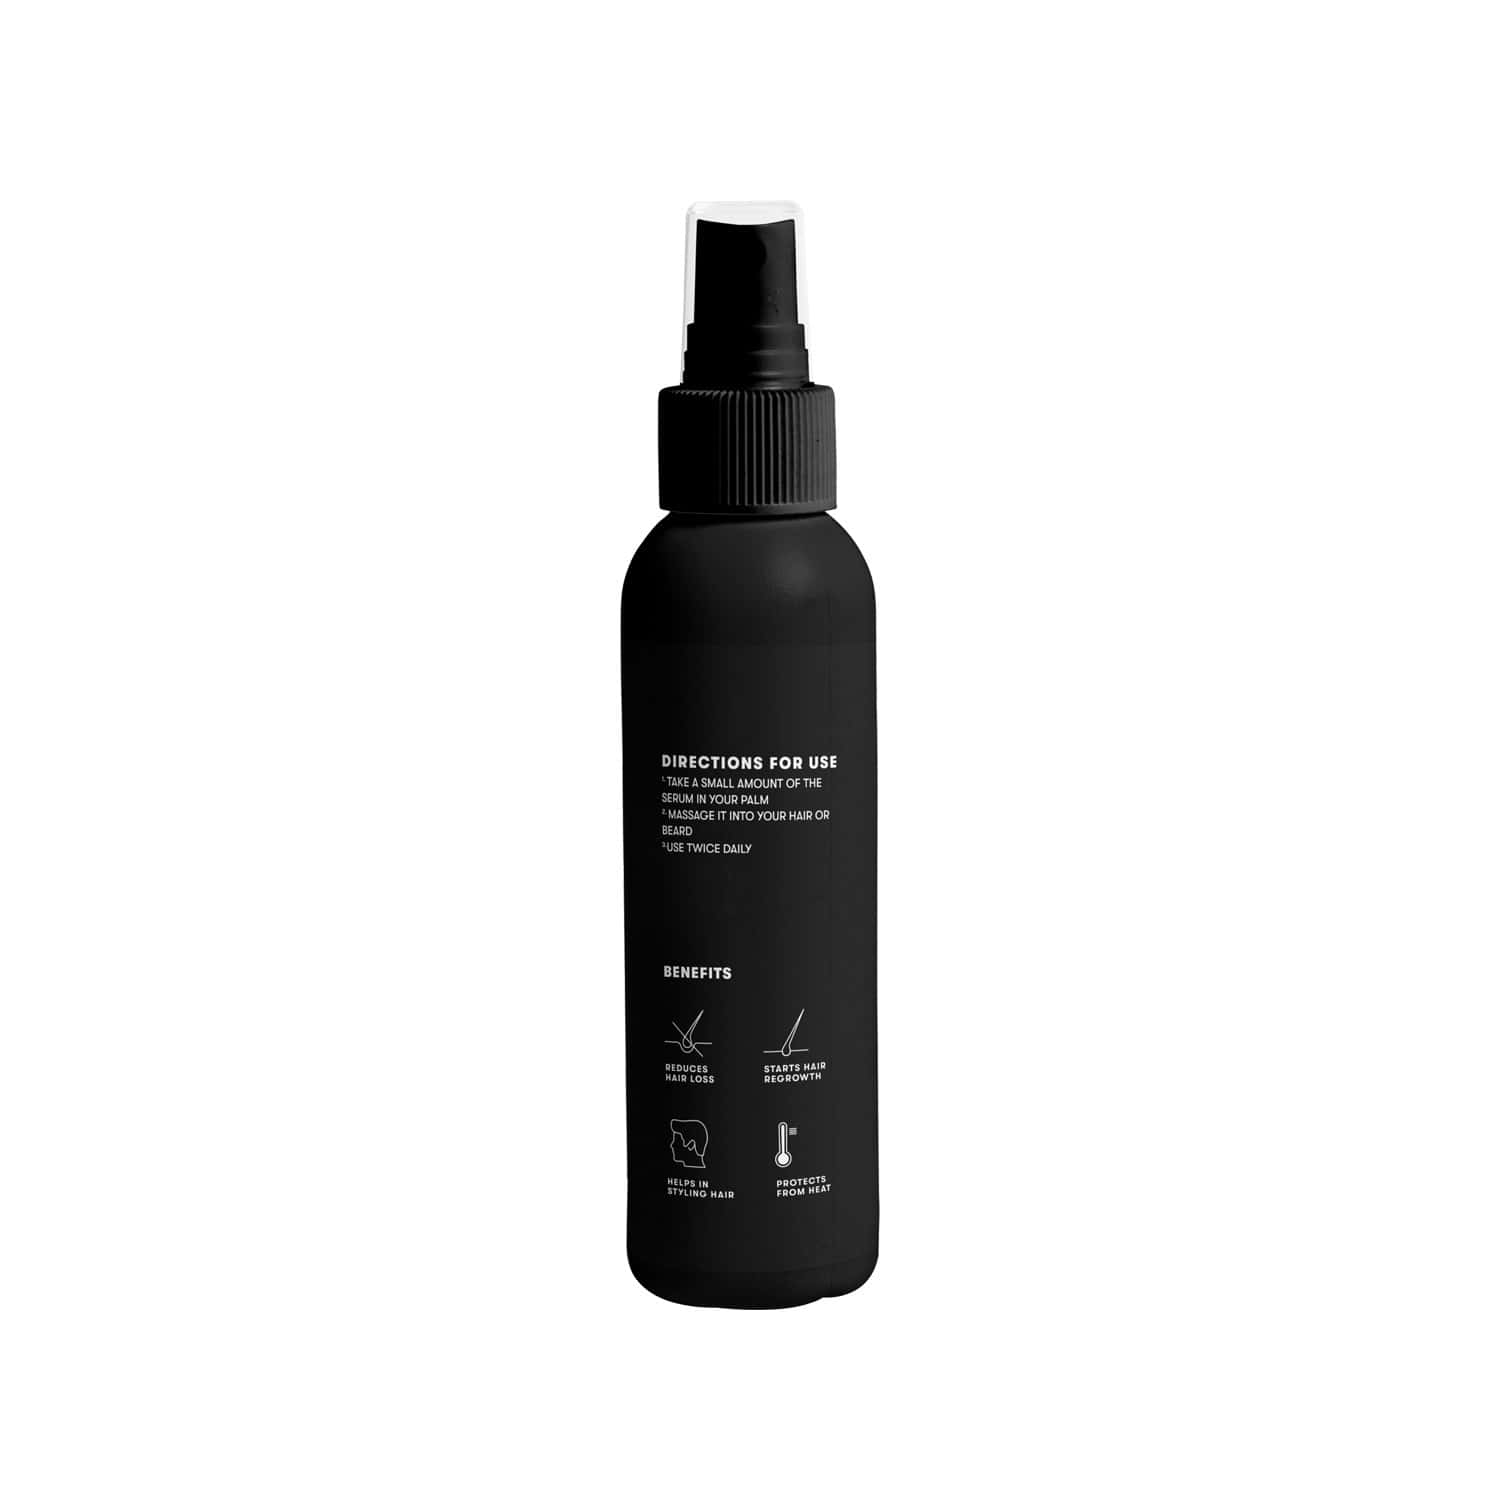 Bold Care Procapil Hair Growth Serum For Men 60ml - Formula For Hair Fall Control, Healthy And Strong Hair - Hair Vitalizer Enriched With Biotin, Castor Oil And More - Clinically Tested